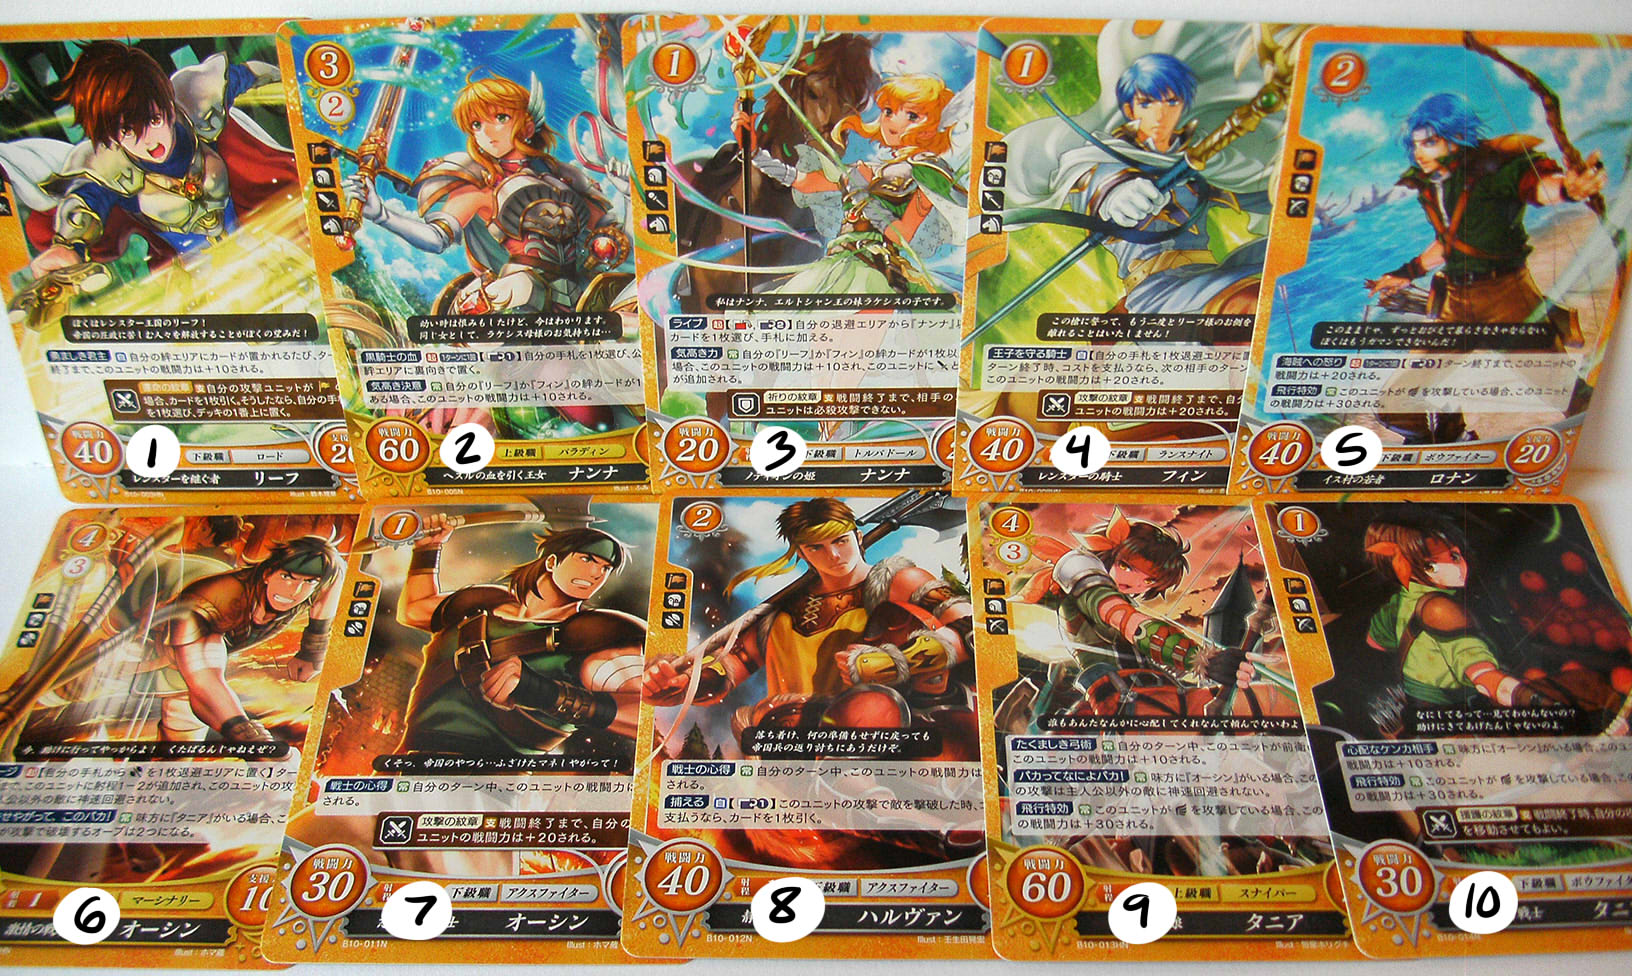 Thracia 776 Fire Emblem Cipher TCG cards (series 10)